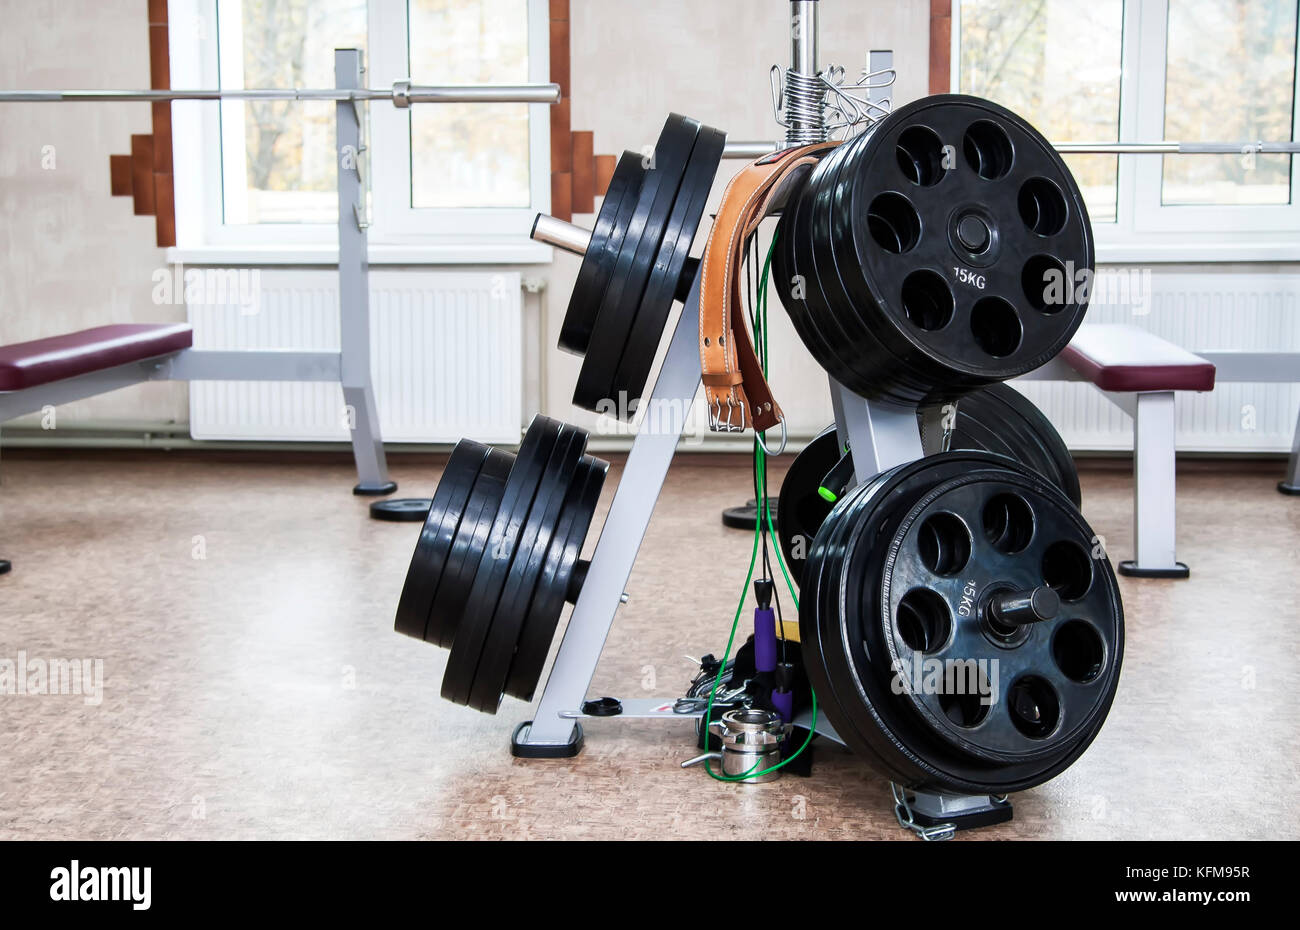 Disassembled barbell on floor in gym.Sports equipment - Stock Image